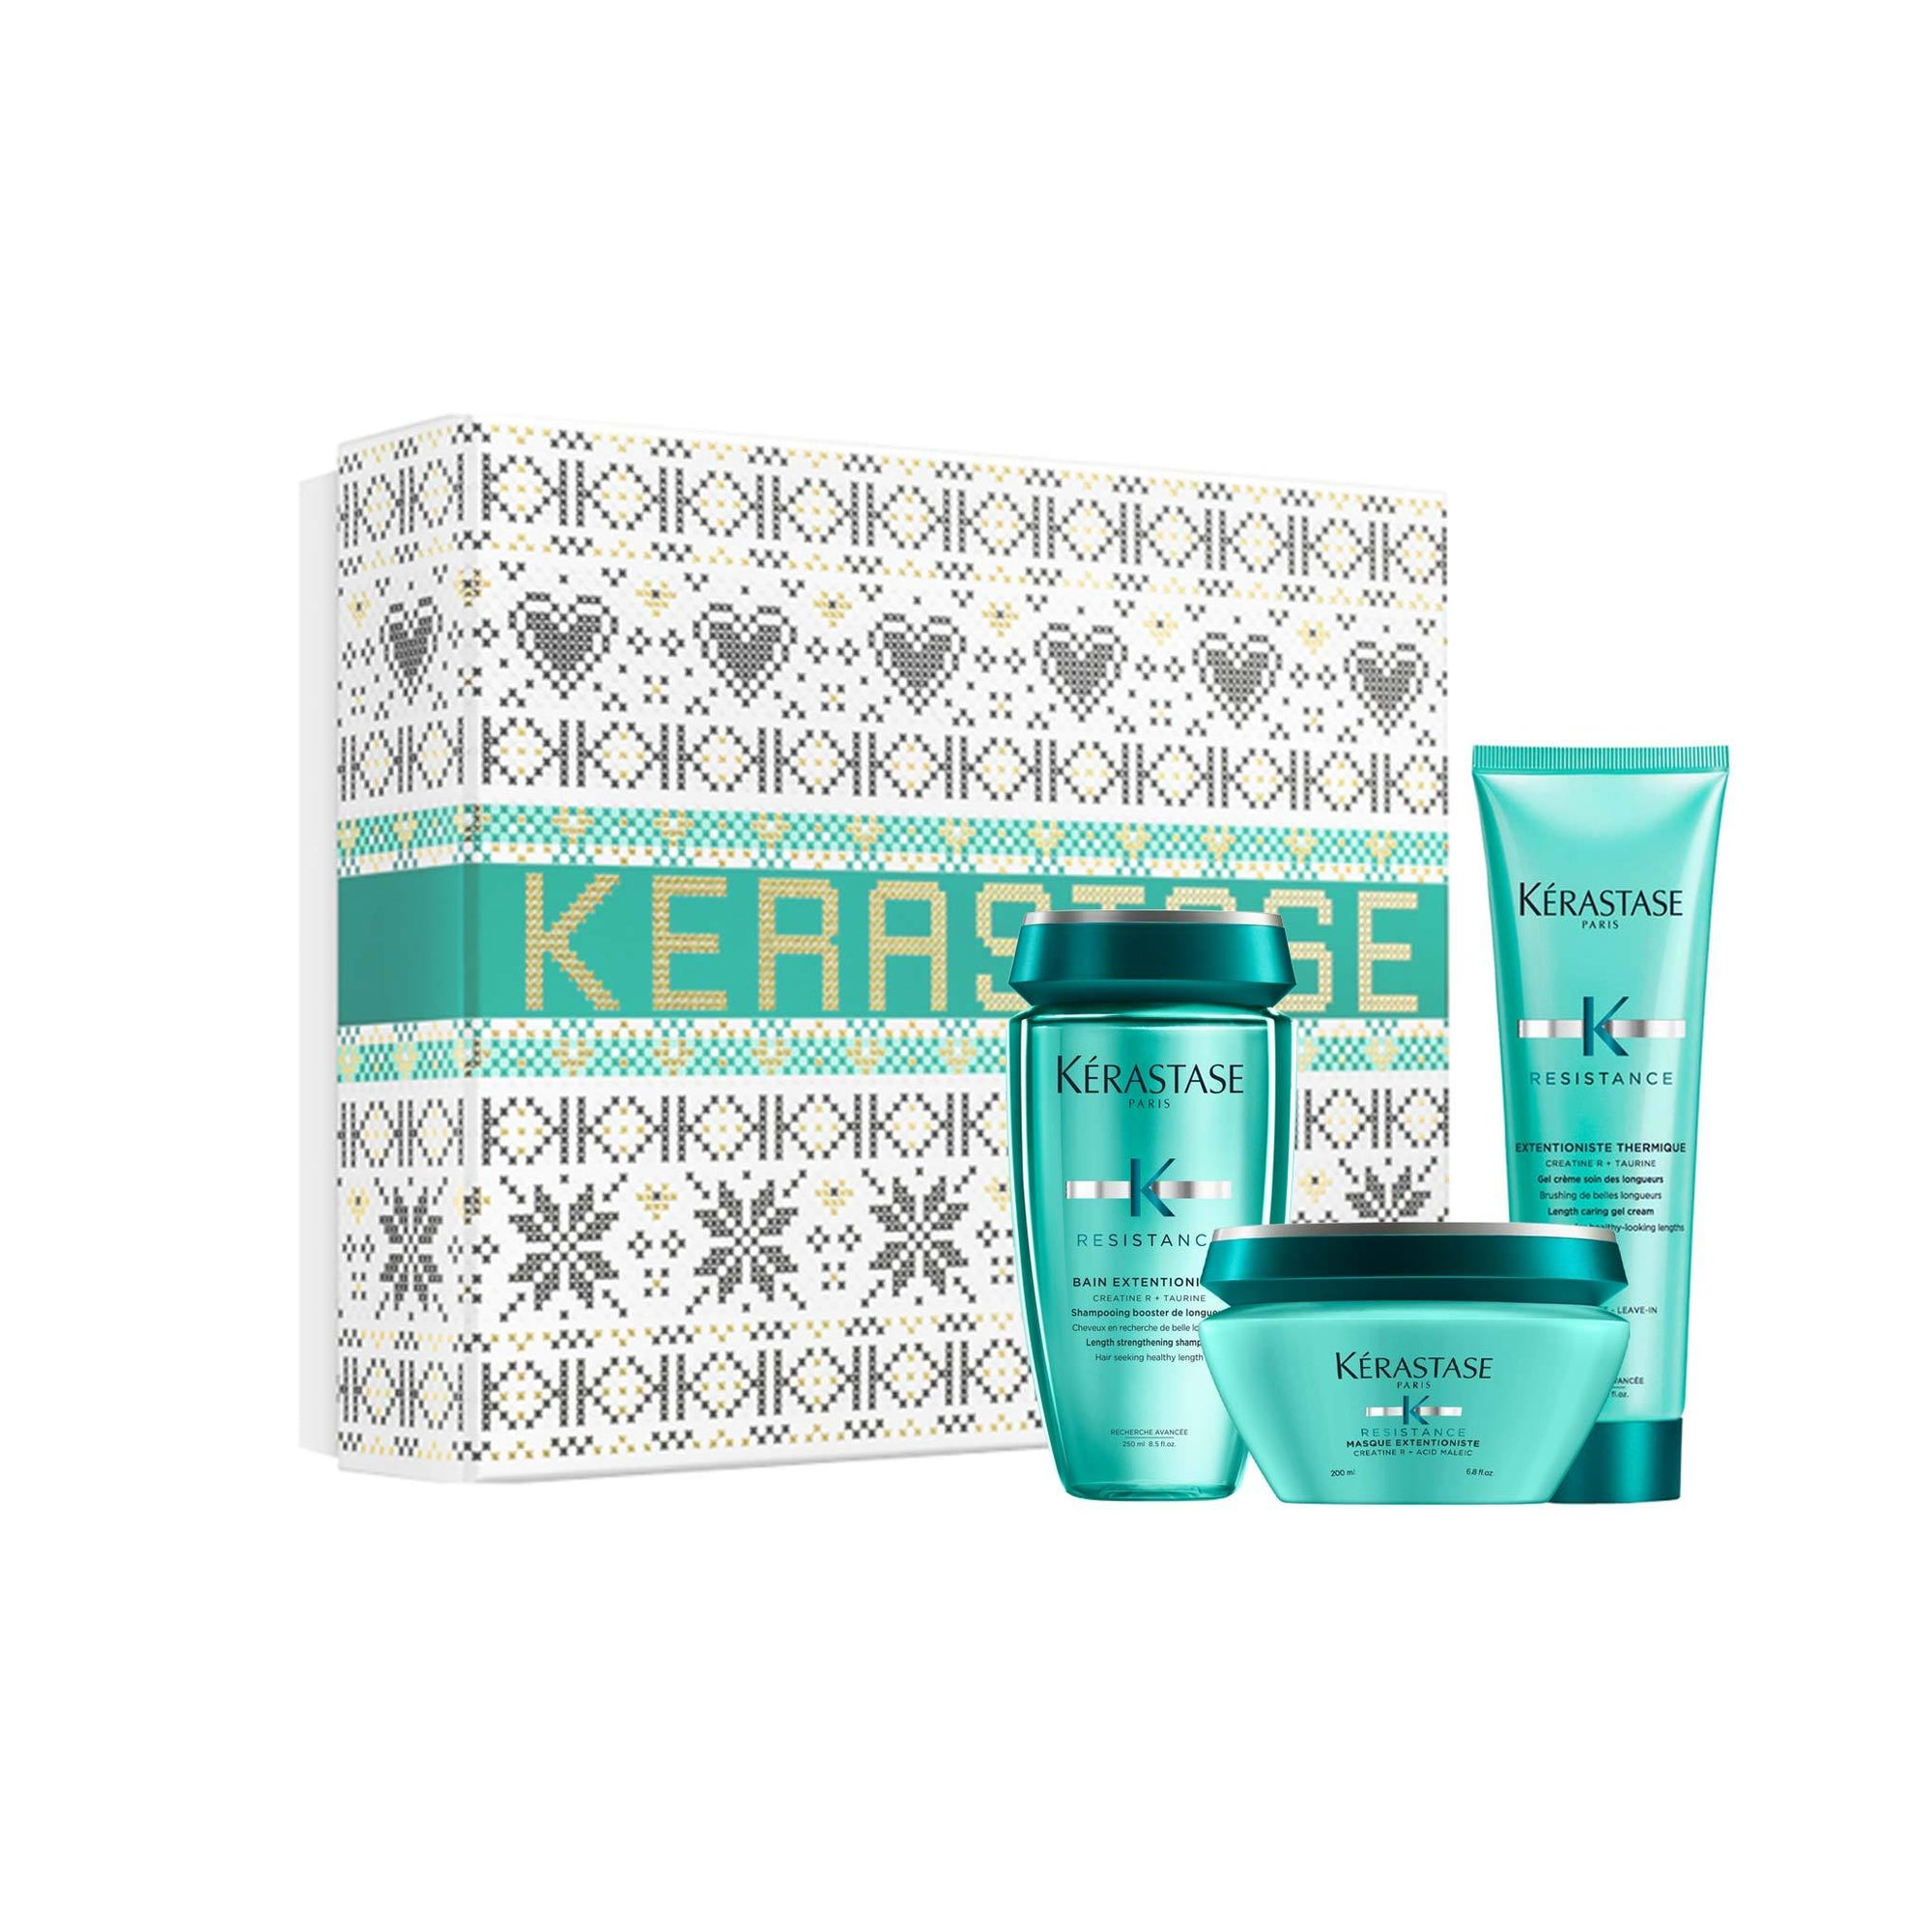 Kerastase Extentioniste Luxury Masque Gift Set For Healthier Looking Lengths